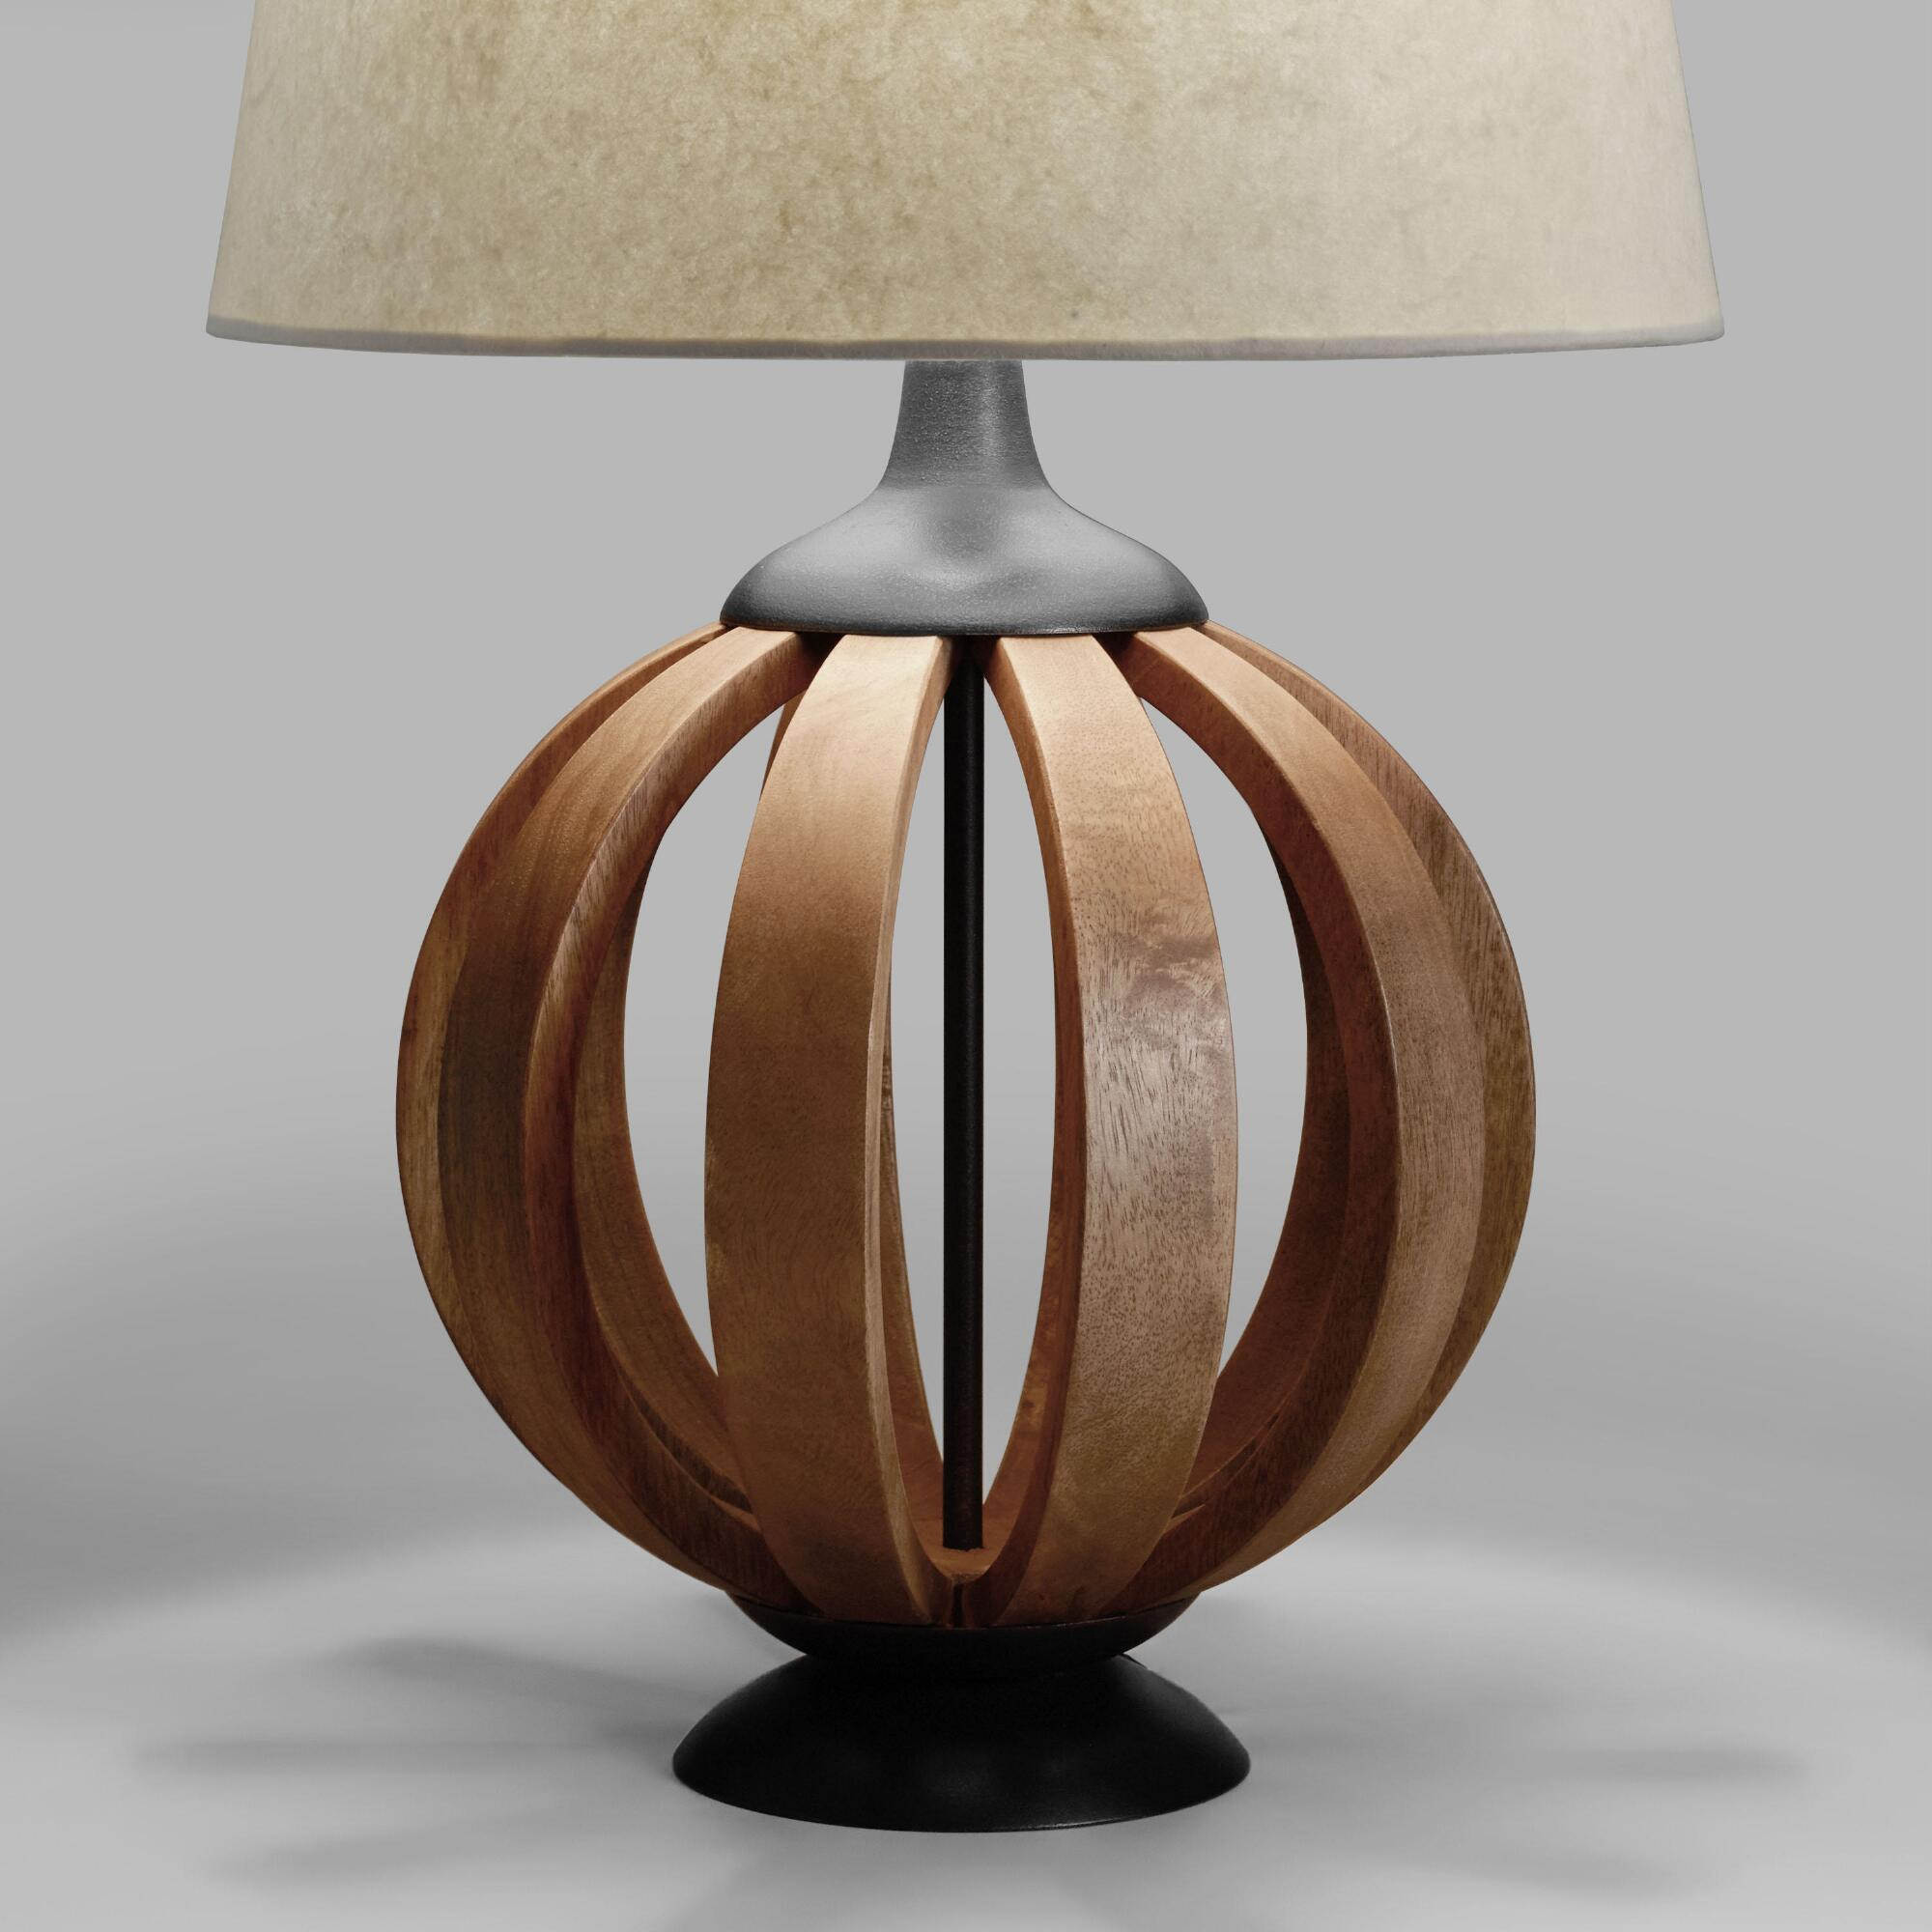 Wood teardrop table lamp base world market wood barrel table lamp base geotapseo Image collections